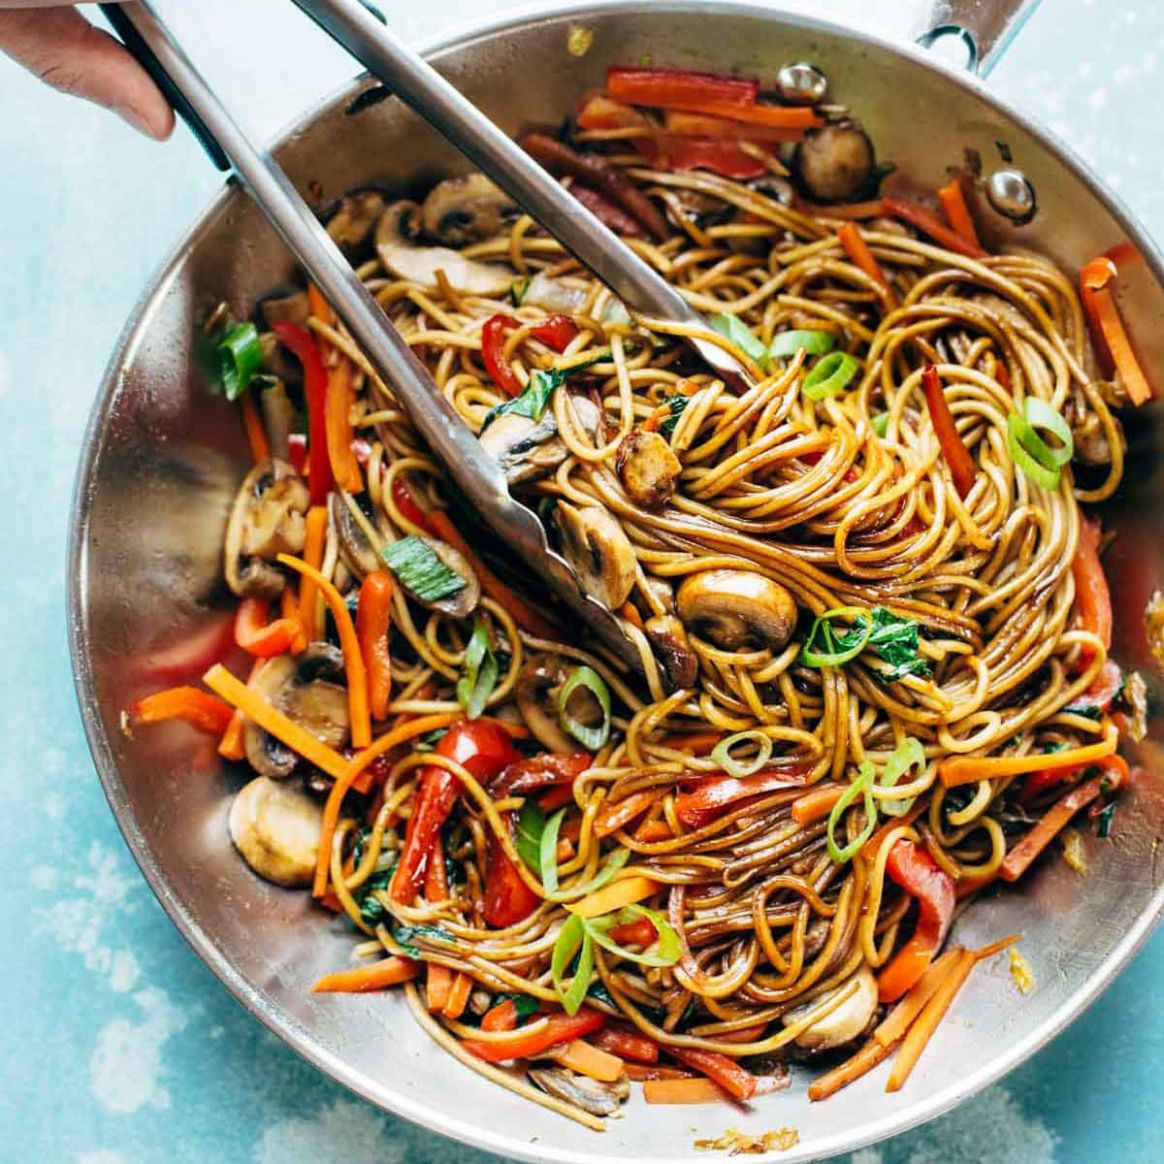 12 Minute Lo Mein - Cooking Recipes Noodles